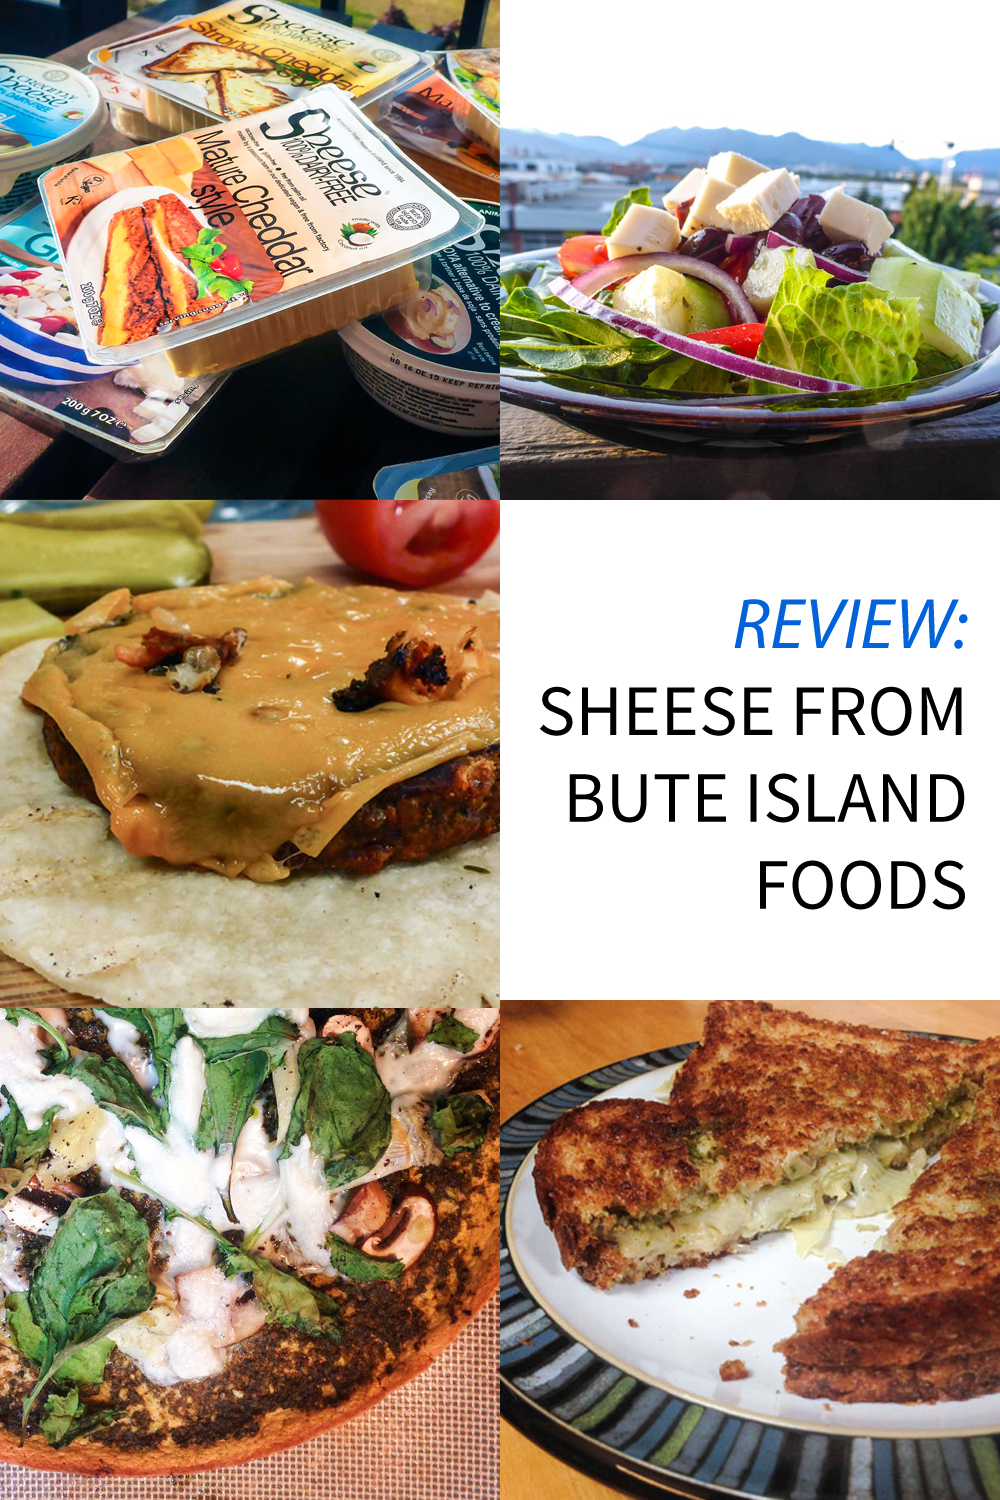 "Image contains a grid of photos involving a vegan cheese product called Sheese. In the centred right block, there is text that says ""Review: Sheese from Bute Island Foods""."